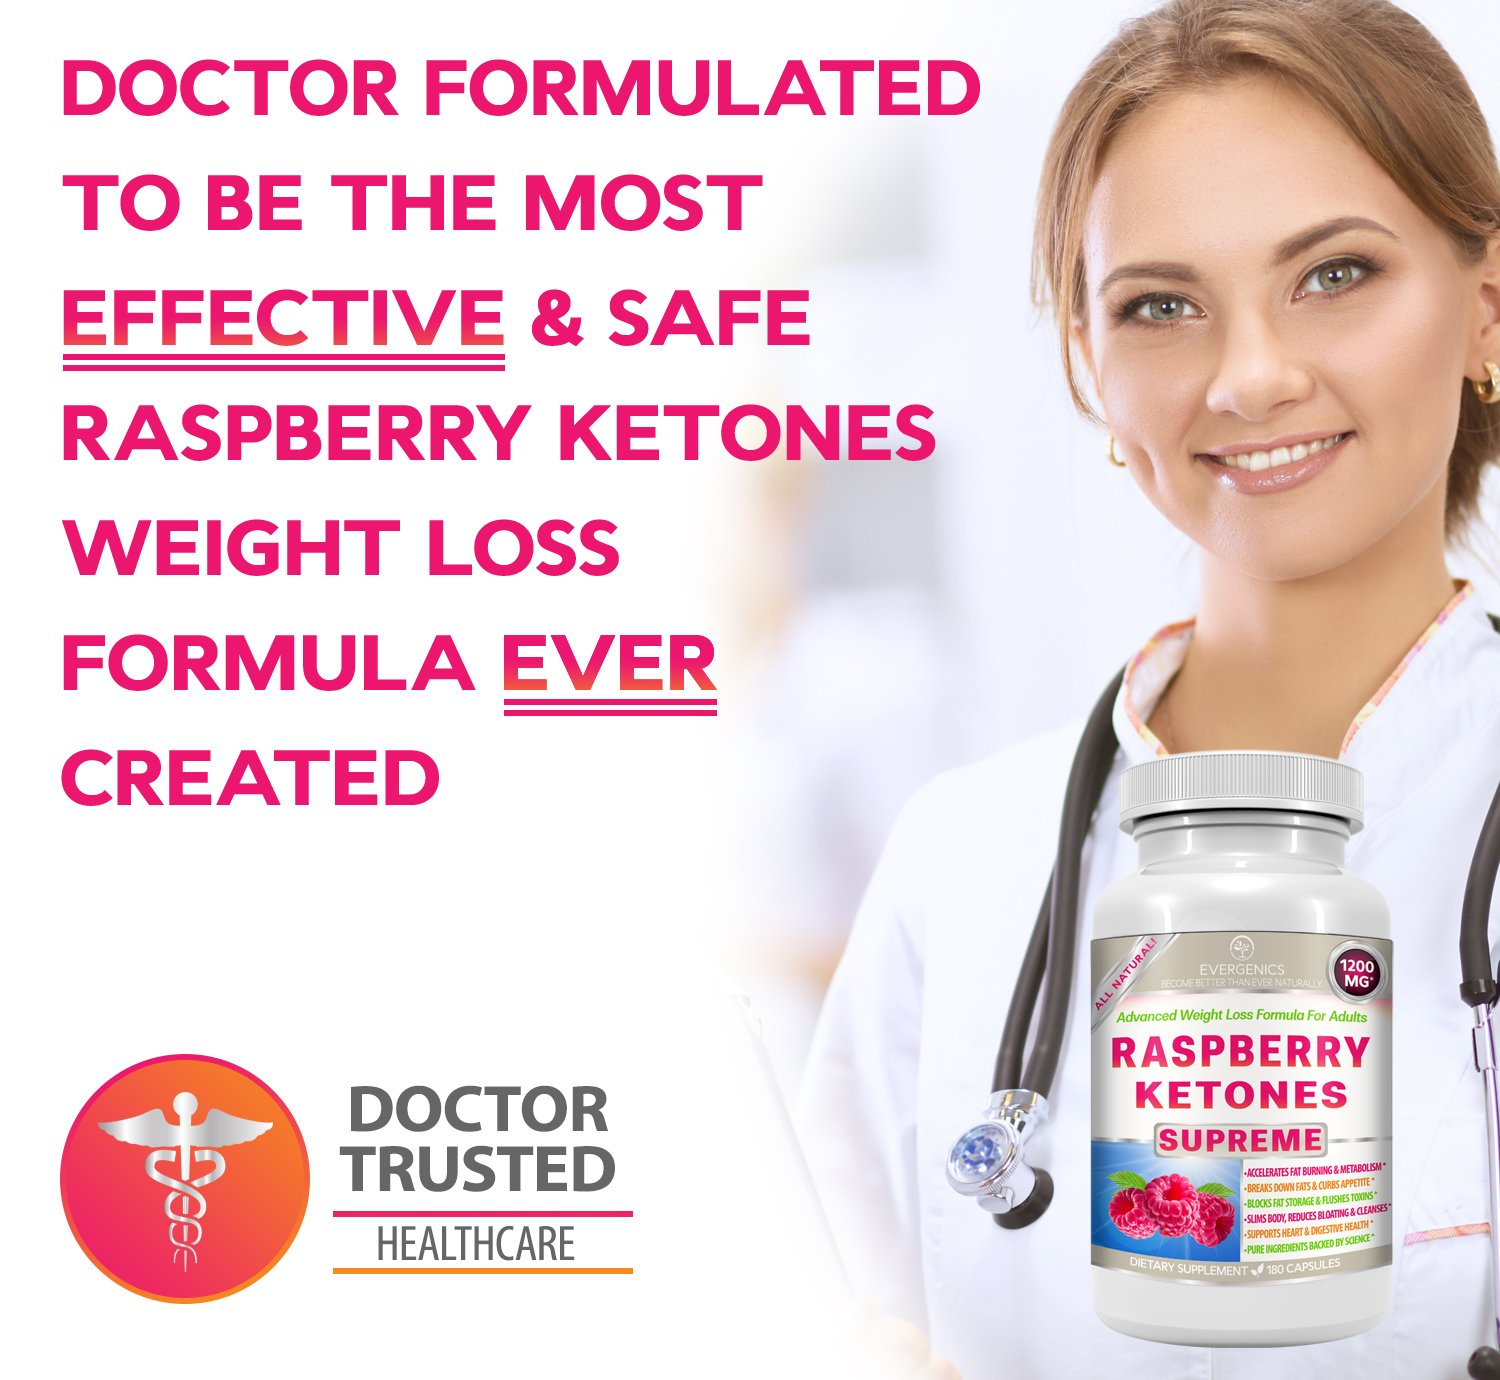 Raspberry Ketones Supreme Weight Loss & Slimming Formula for Adults. 1200mg Per Day. 180 All-Natural Capsules with Premium, Pure & Organic Ingredients. by Evergenics Health and Personal Care (Image #3)